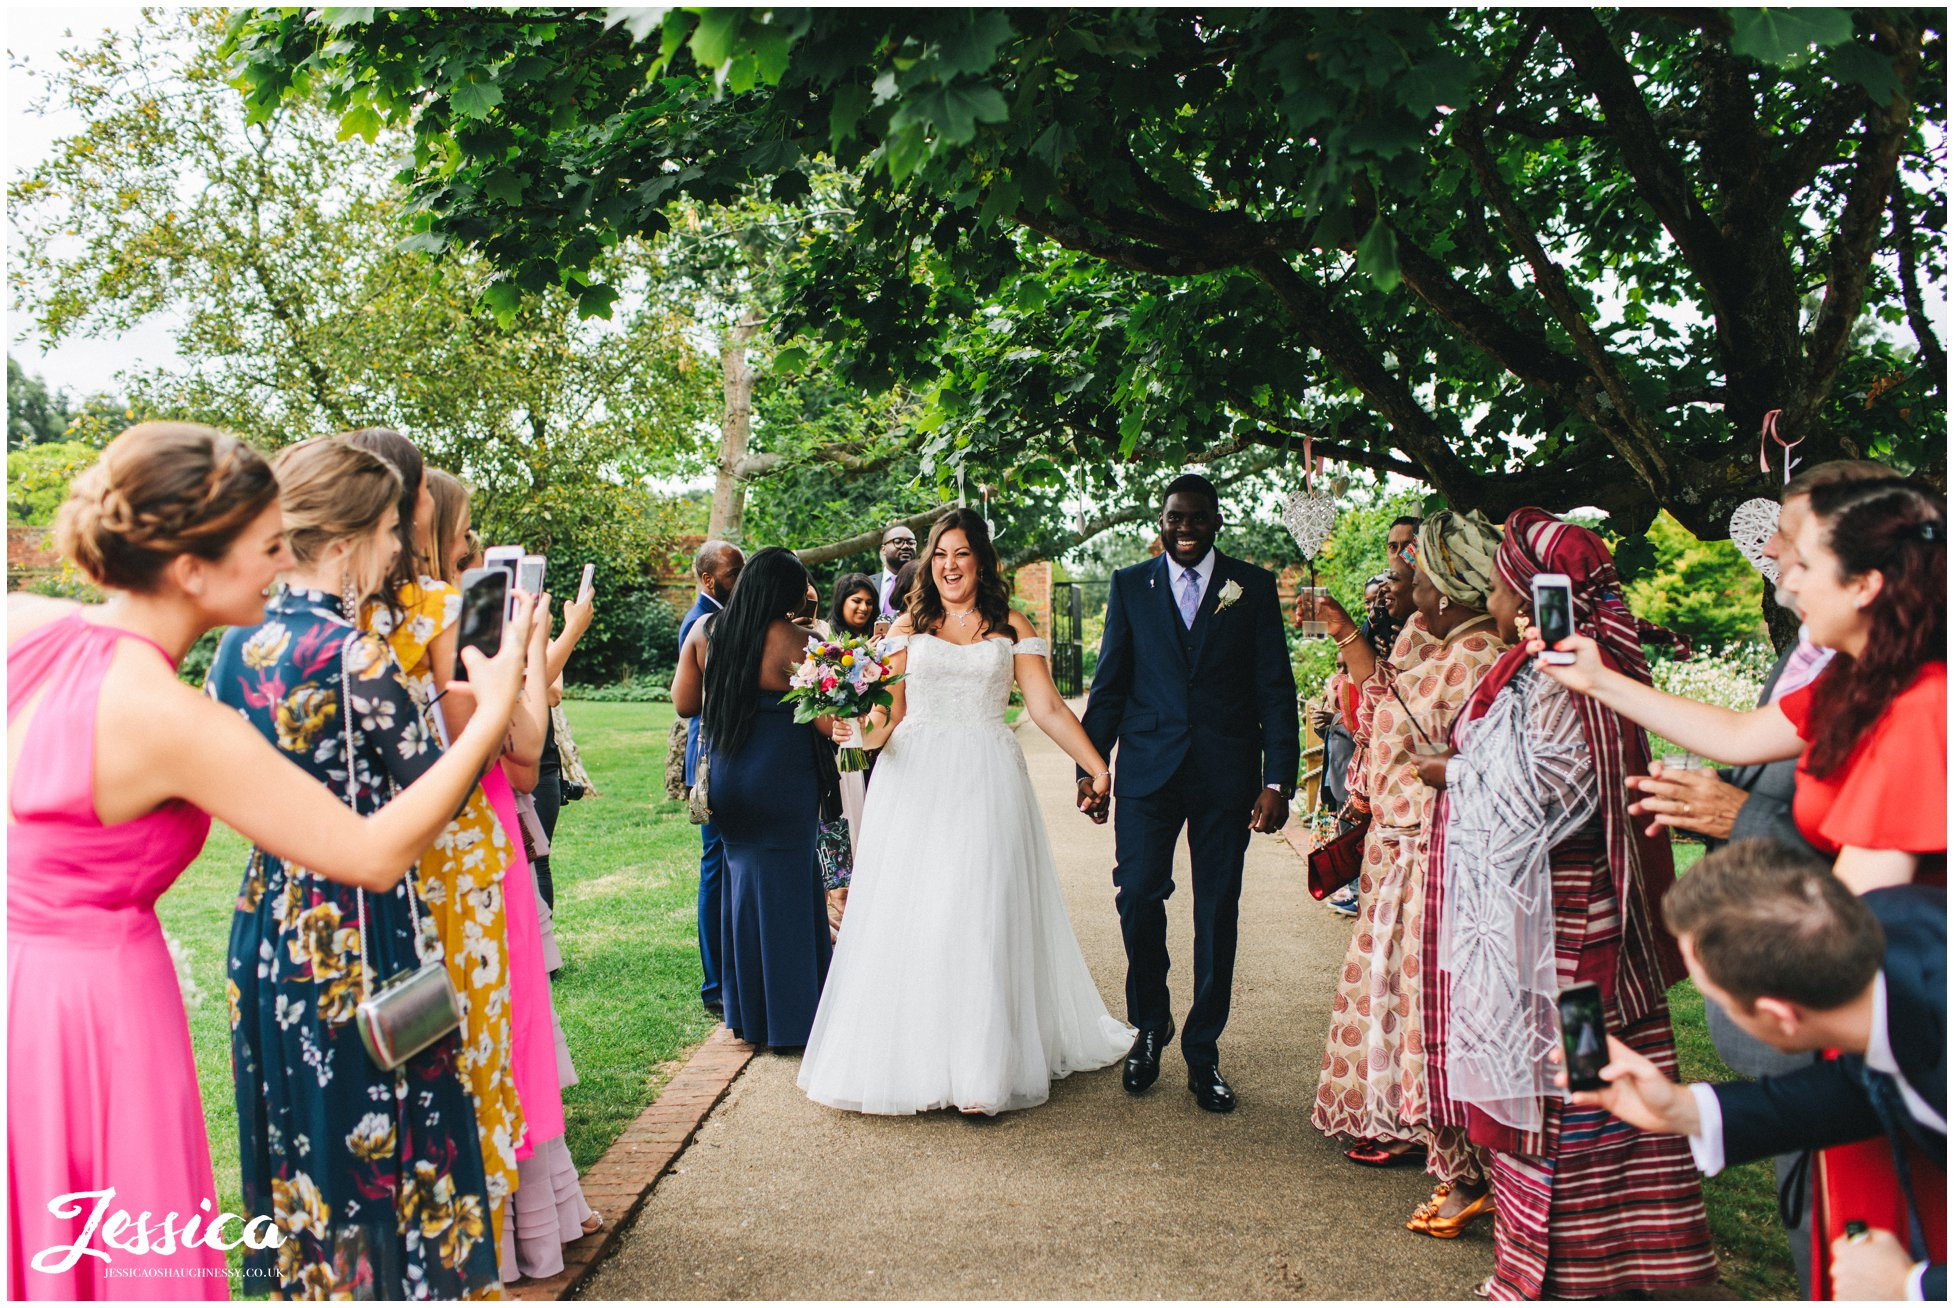 the couple are welcomed in to their gaynes park wedding reception